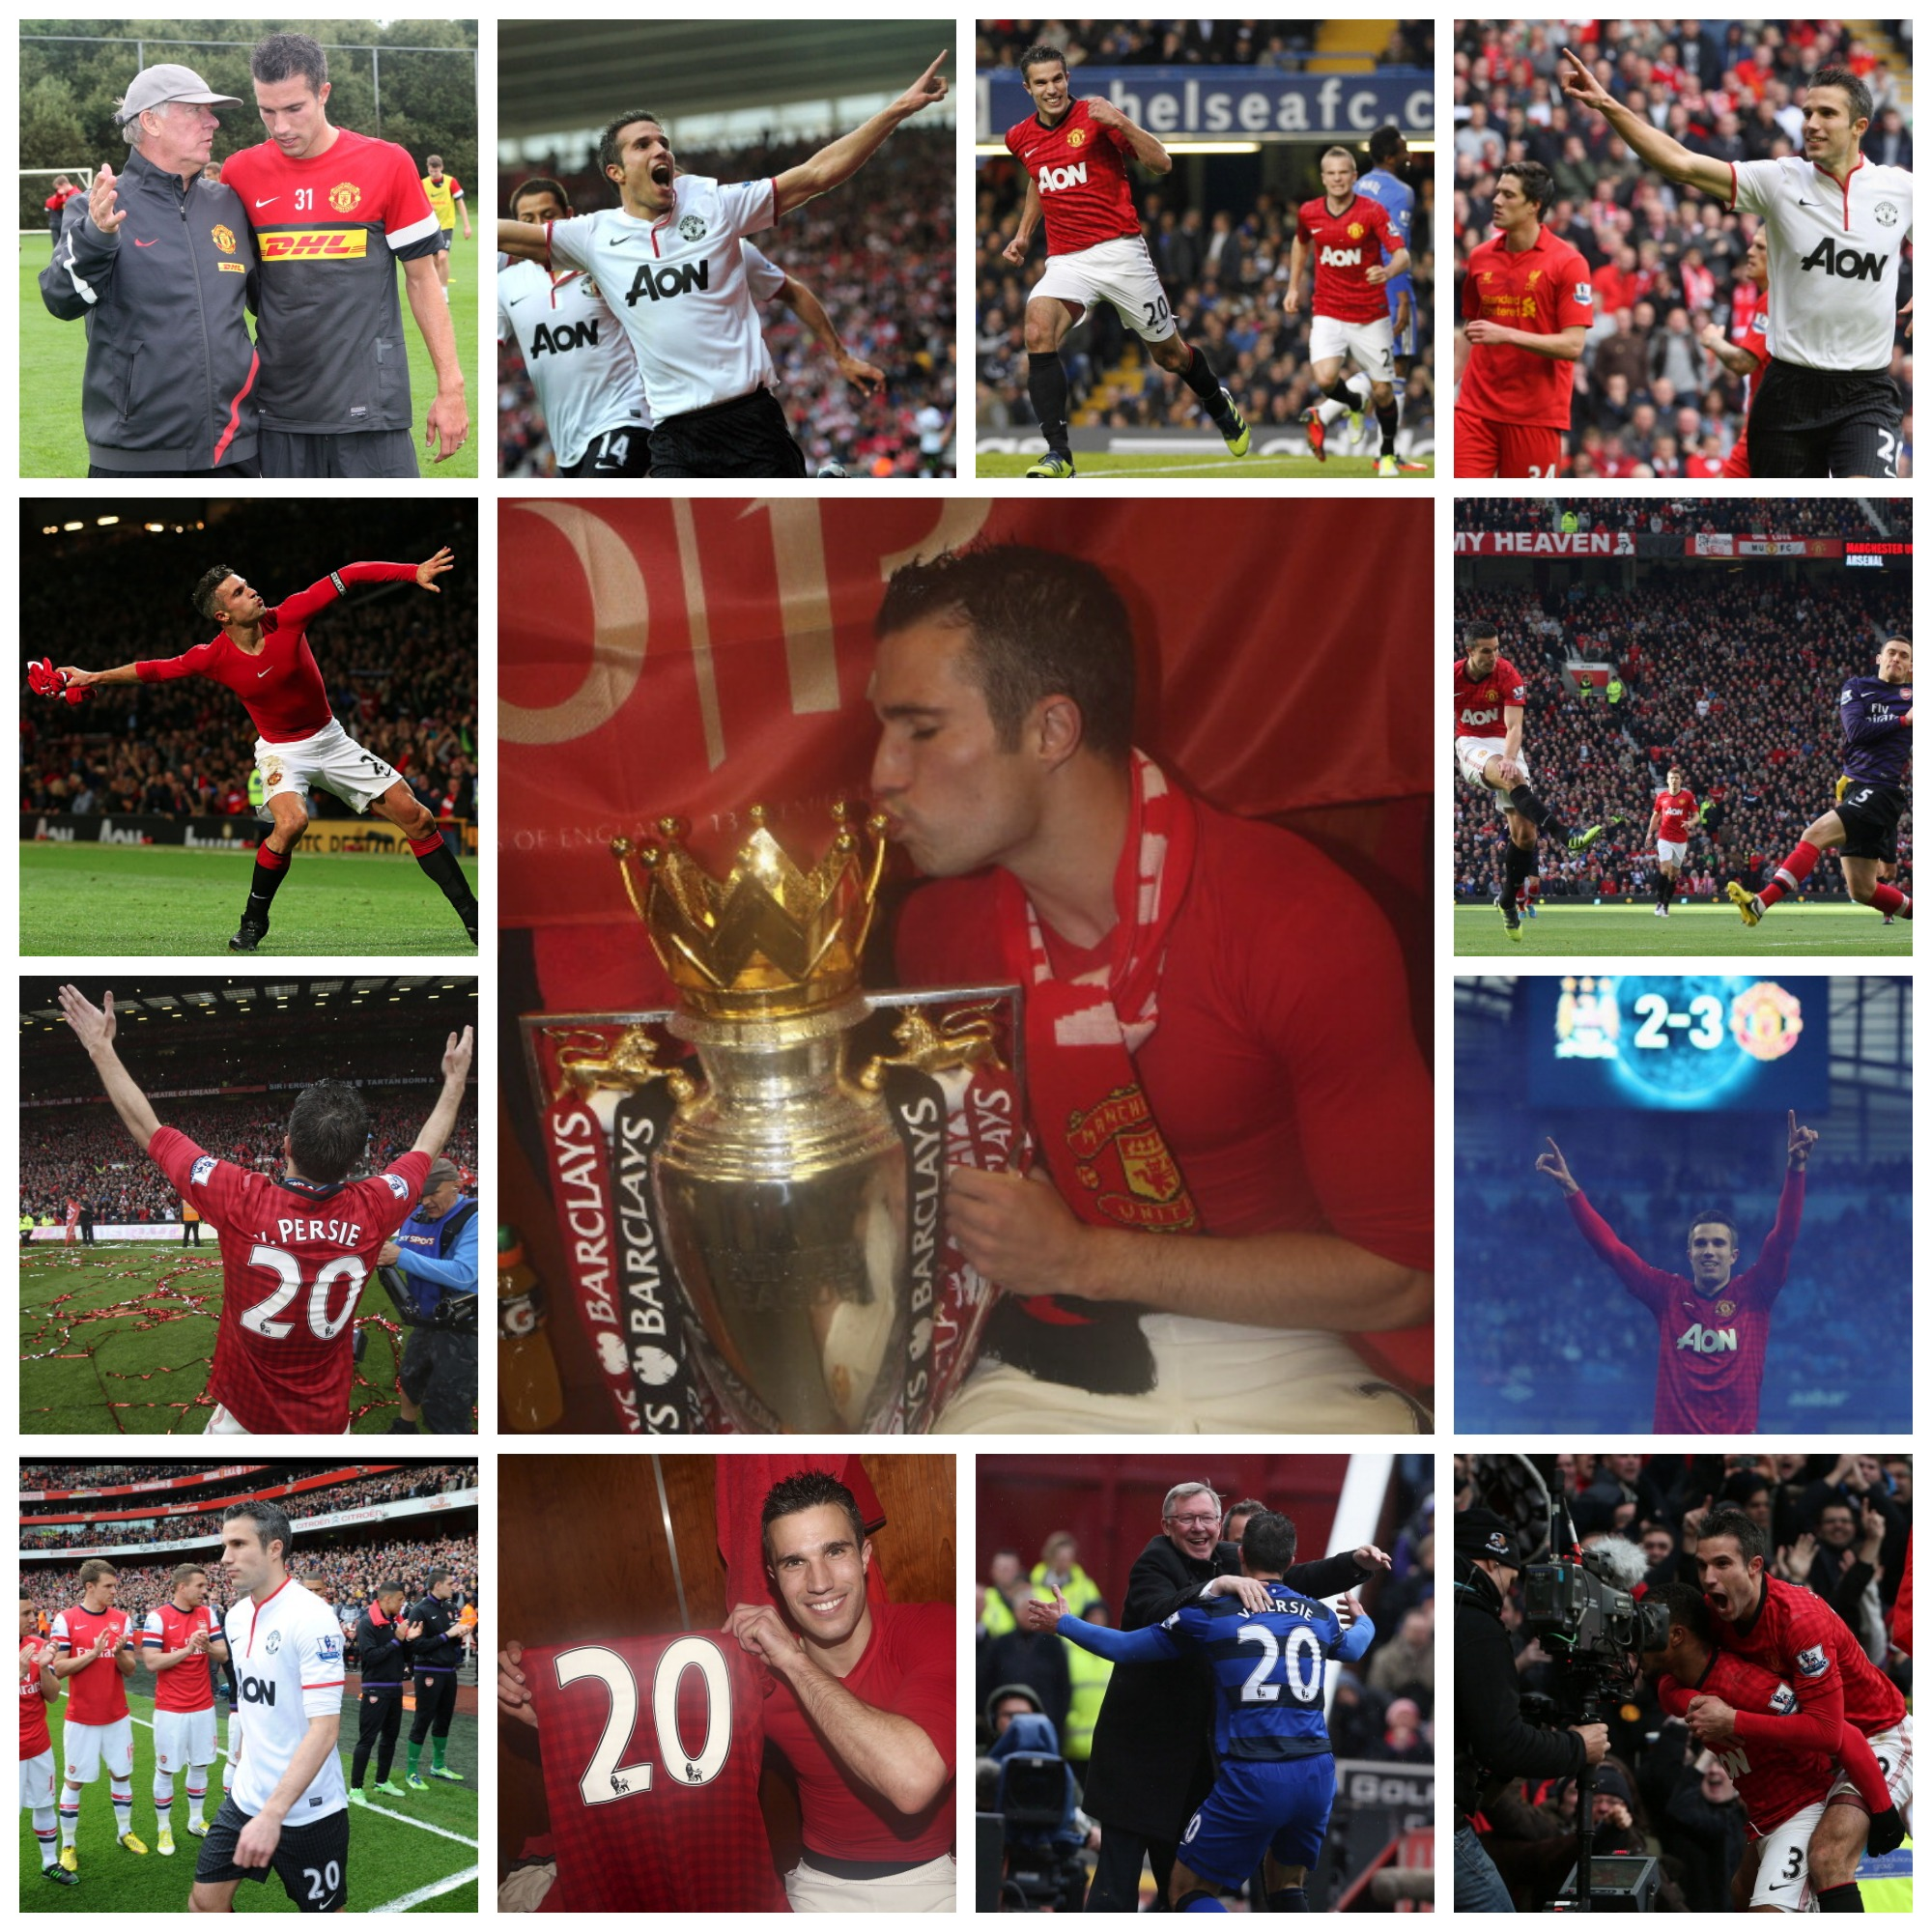 PICTURES: Robin van Persie's United career